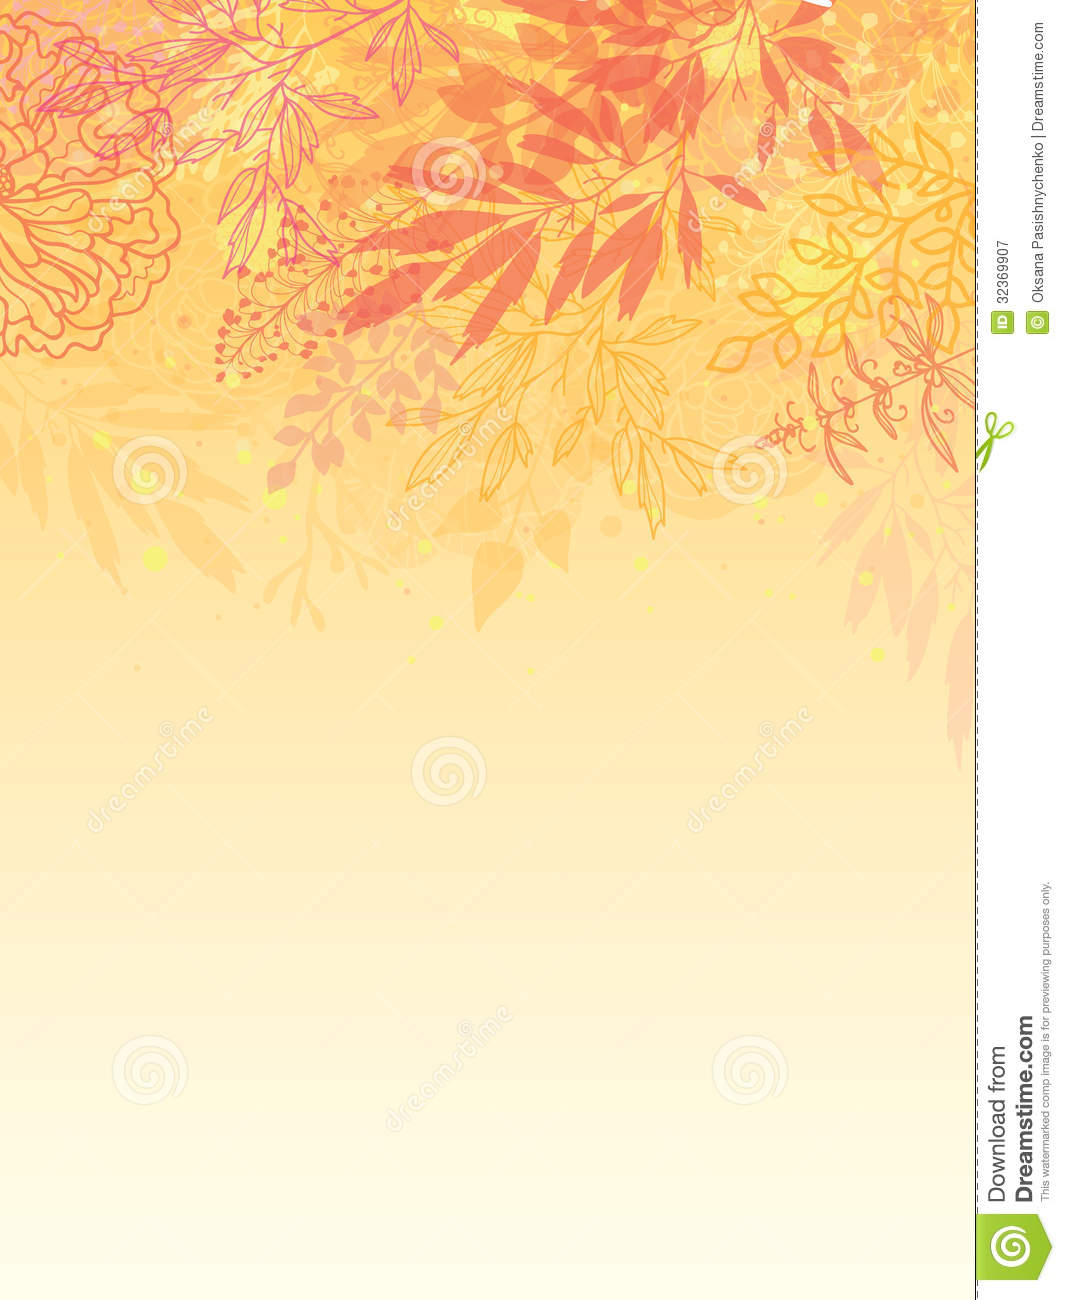 glowing fall plants vertical background royalty free stock garden party clipart free free garden clipart images